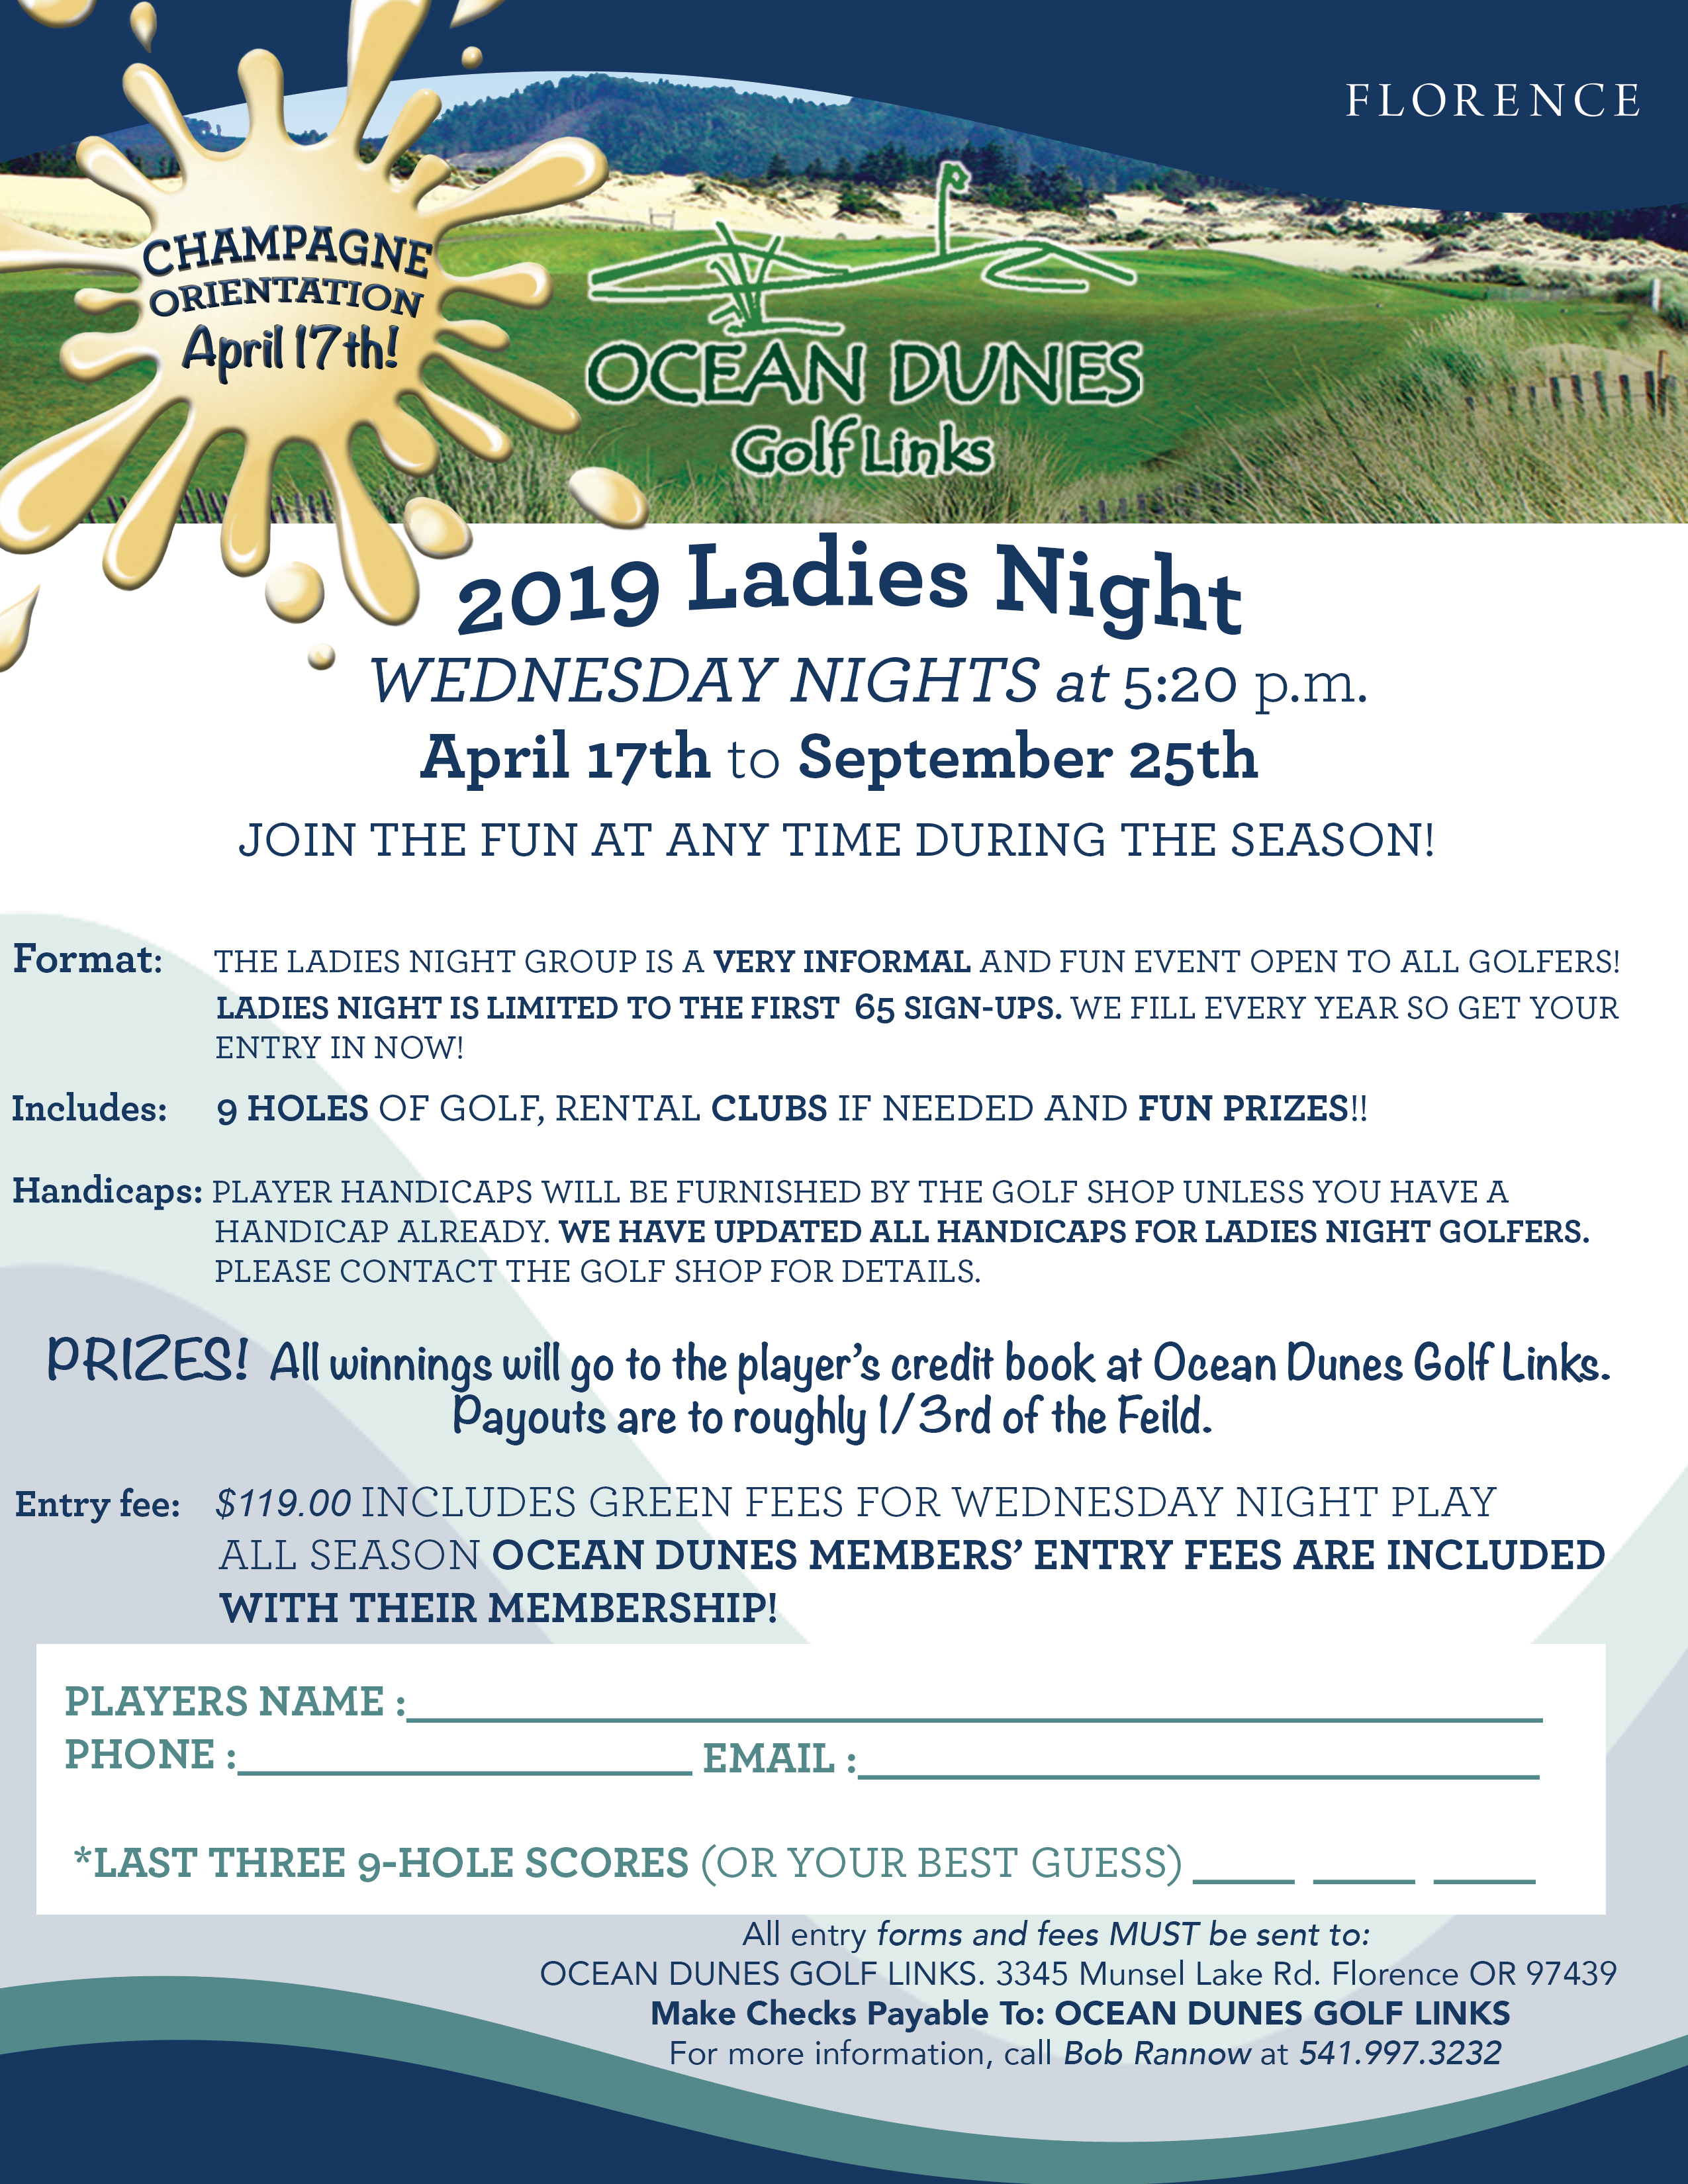 Ocean Dunes Golf Tournaments Florence Or